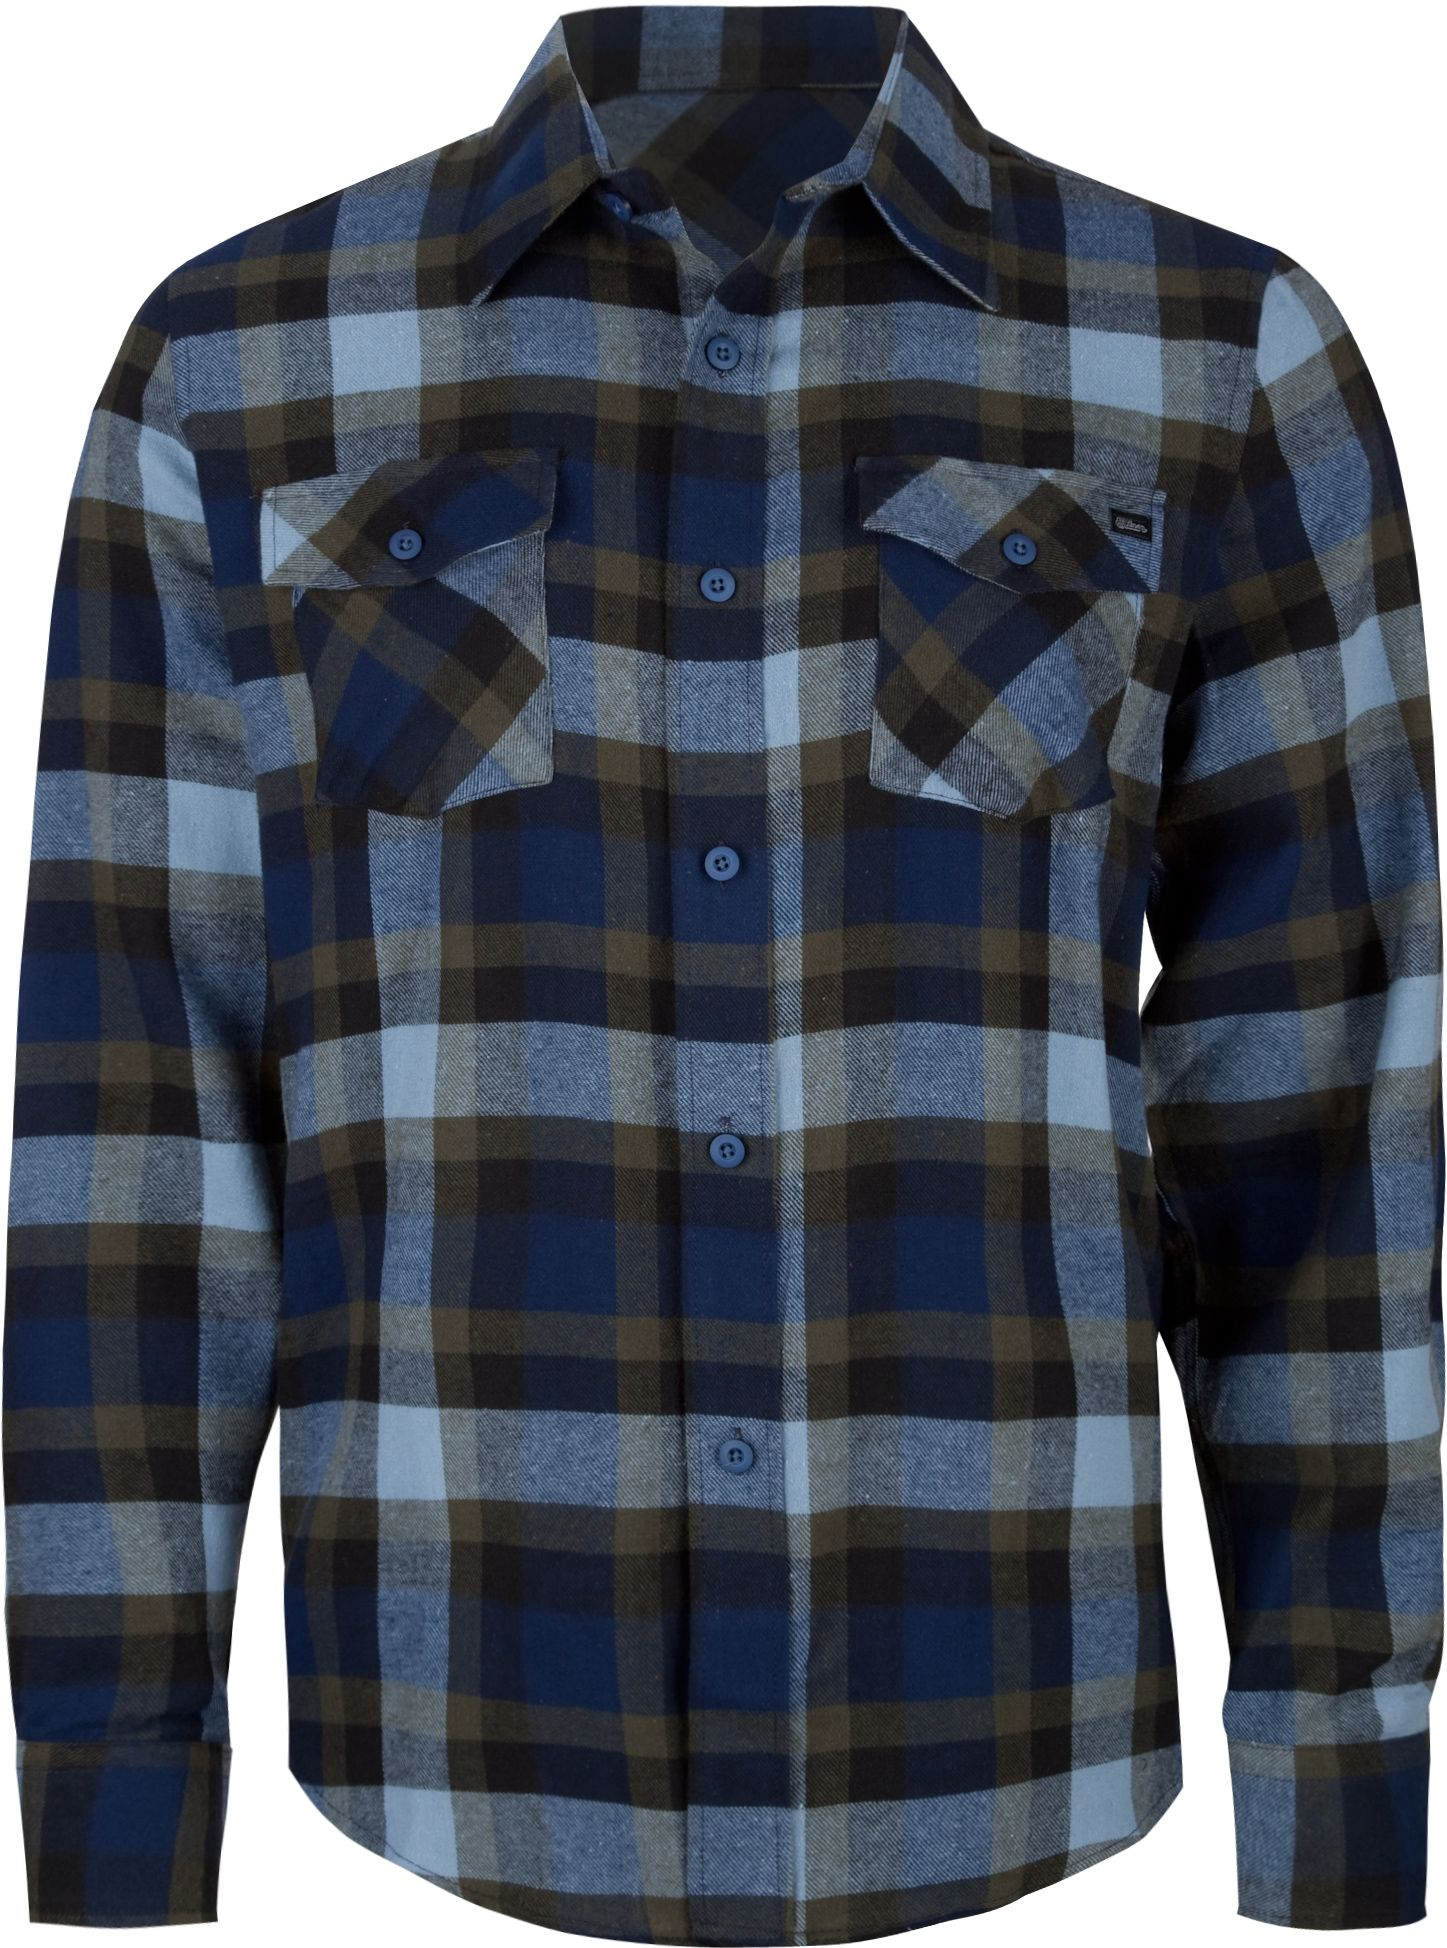 ELIXIR Neo Buffalo Mens Flannel Shirt 201800200 | Flannel Shirts ...